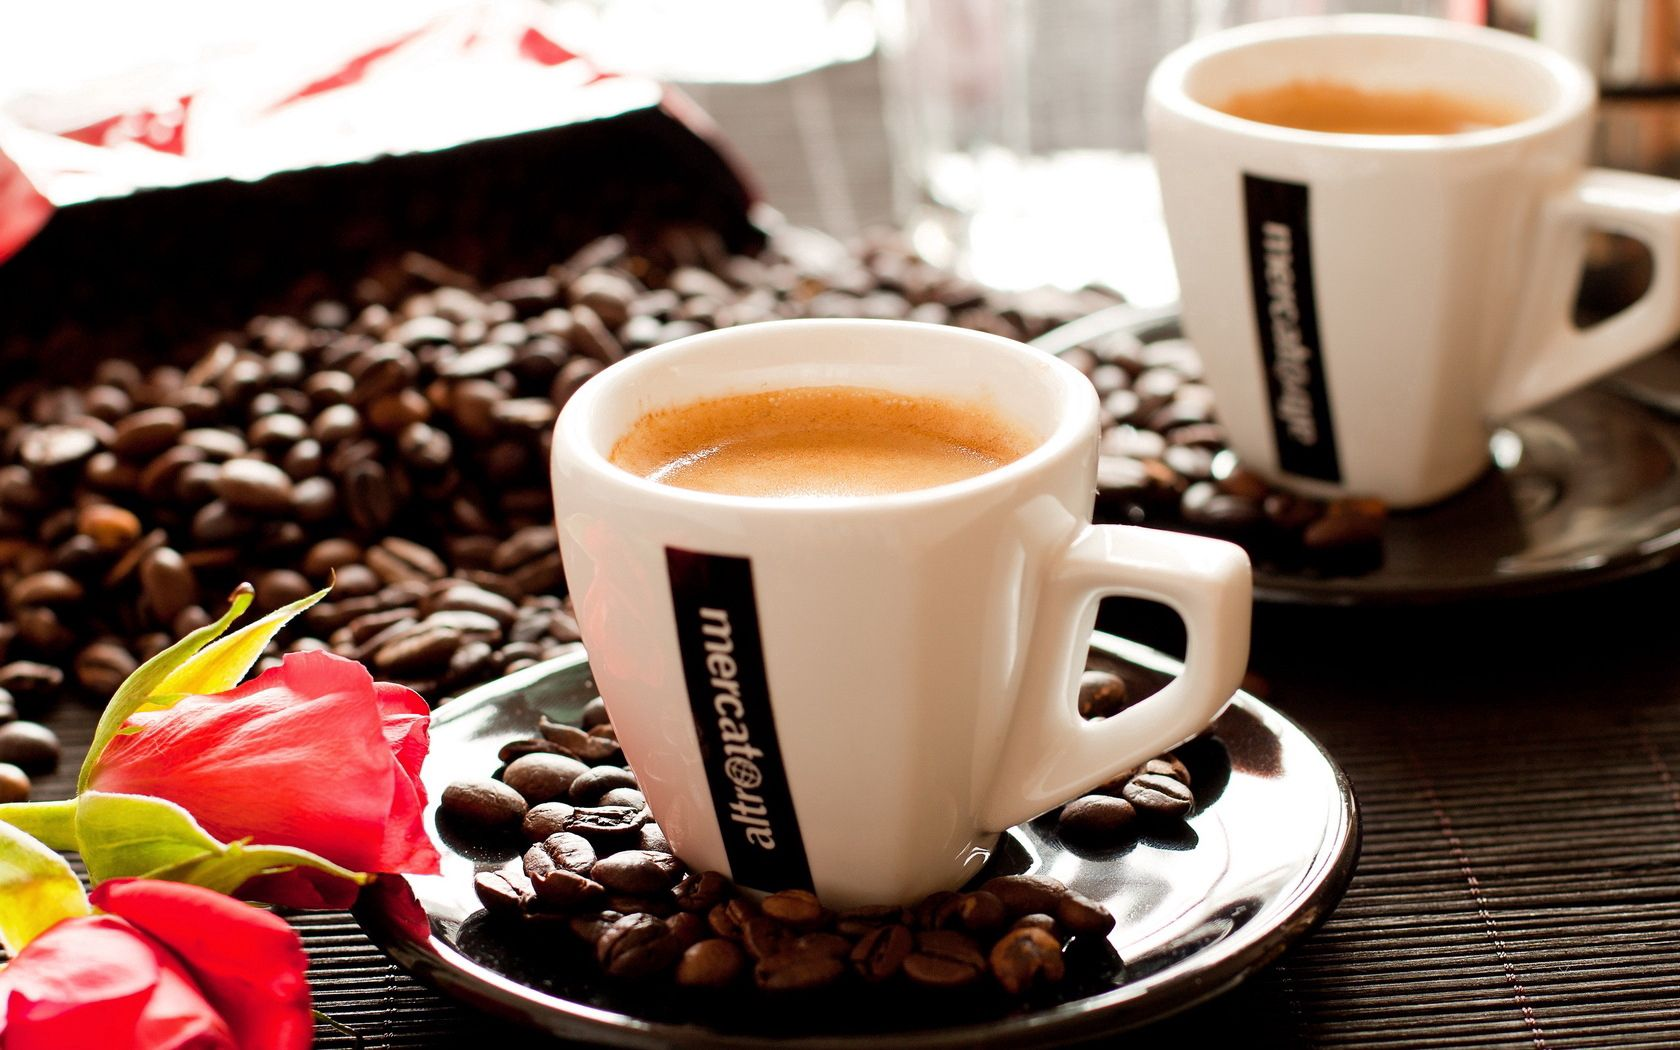 156170 download wallpaper Food, Cups, Coffee, Macro screensavers and pictures for free